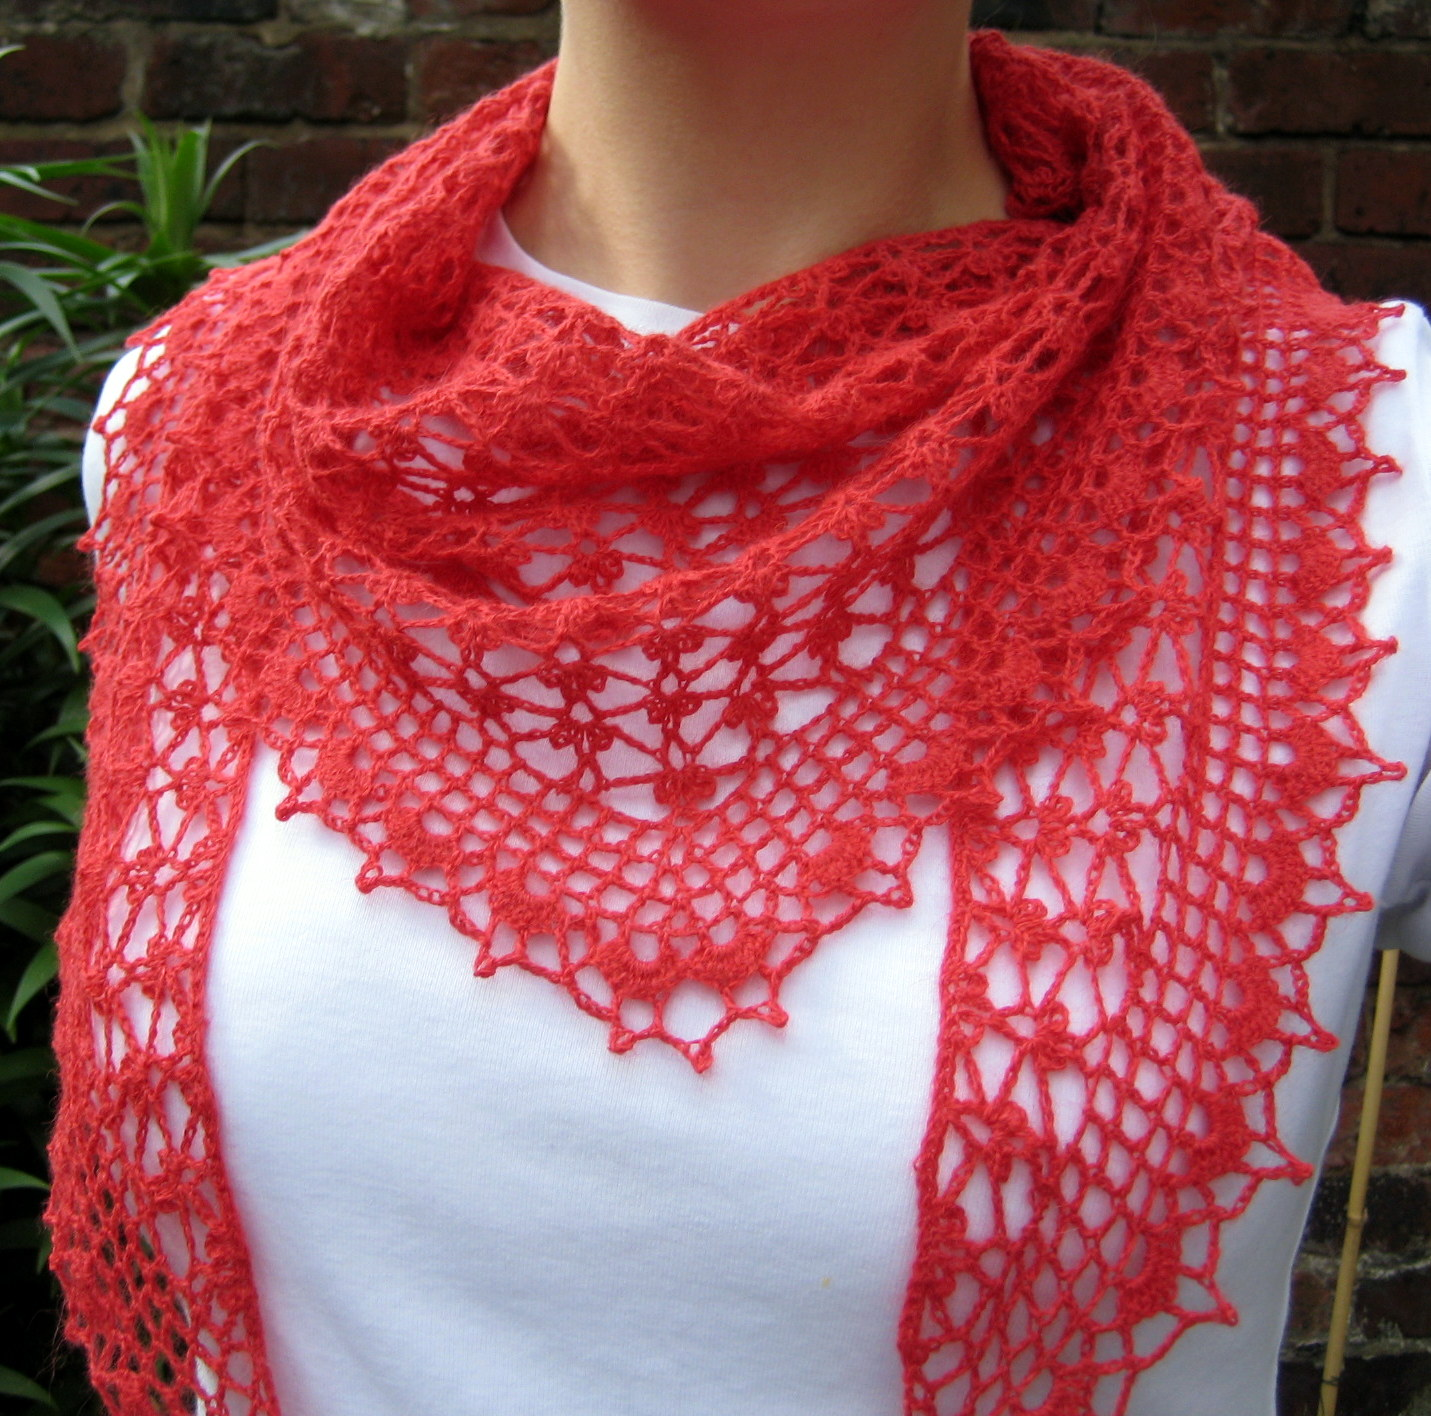 Crochet Patterns Lace Weight Yarn : Summer Sprigs Lace Scarf Make My Day Creative